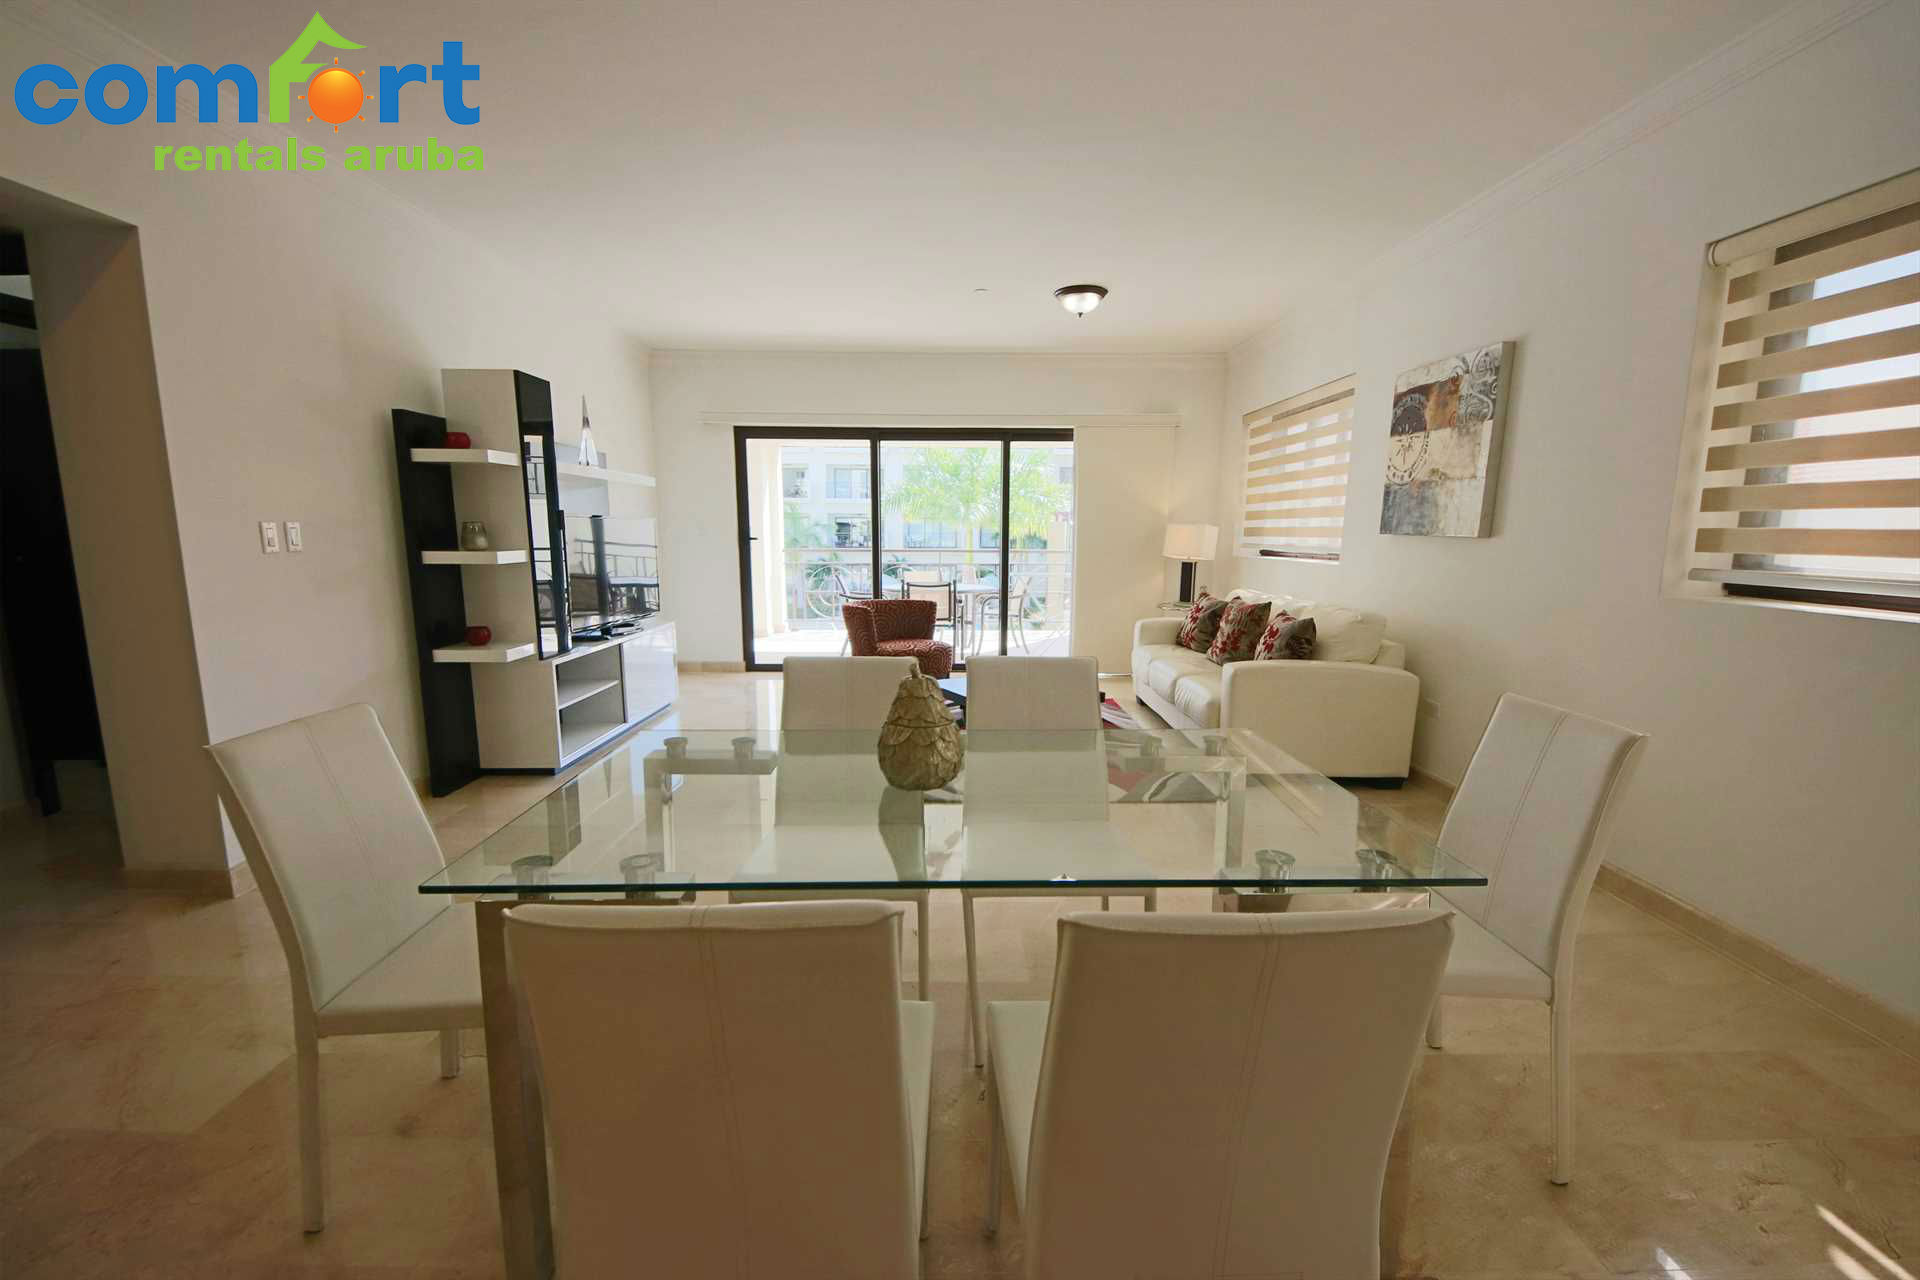 Dining area with a 6-seat dining table